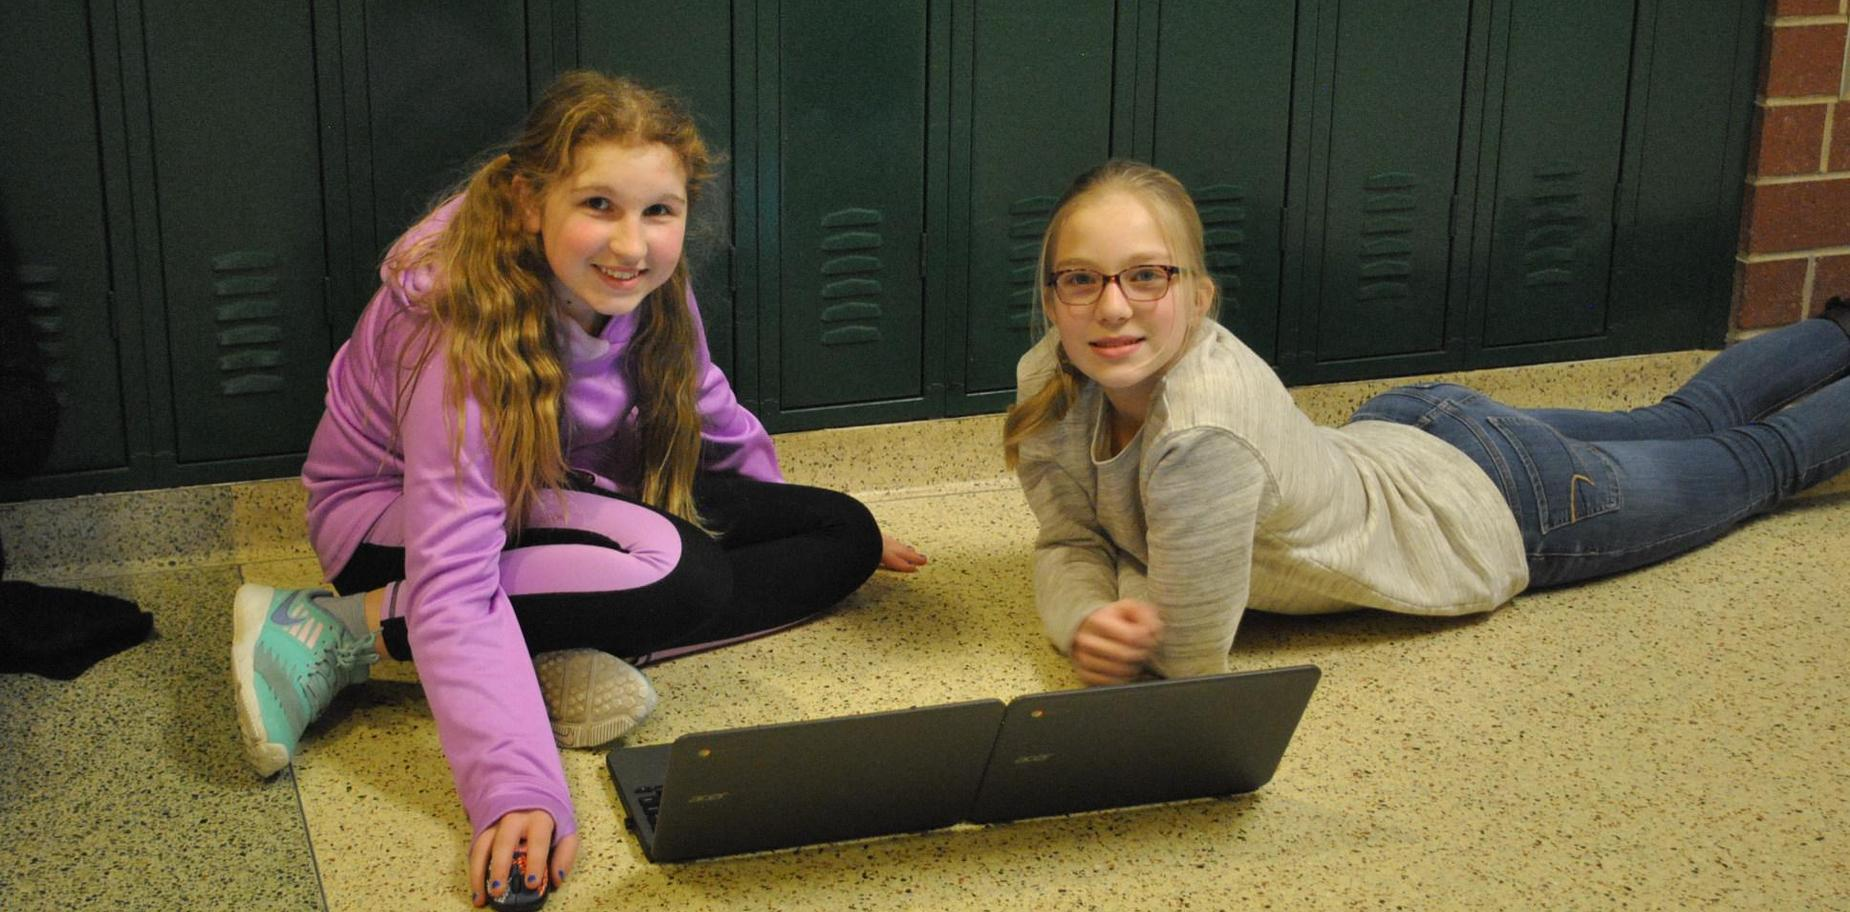 girls working on Chromebooks